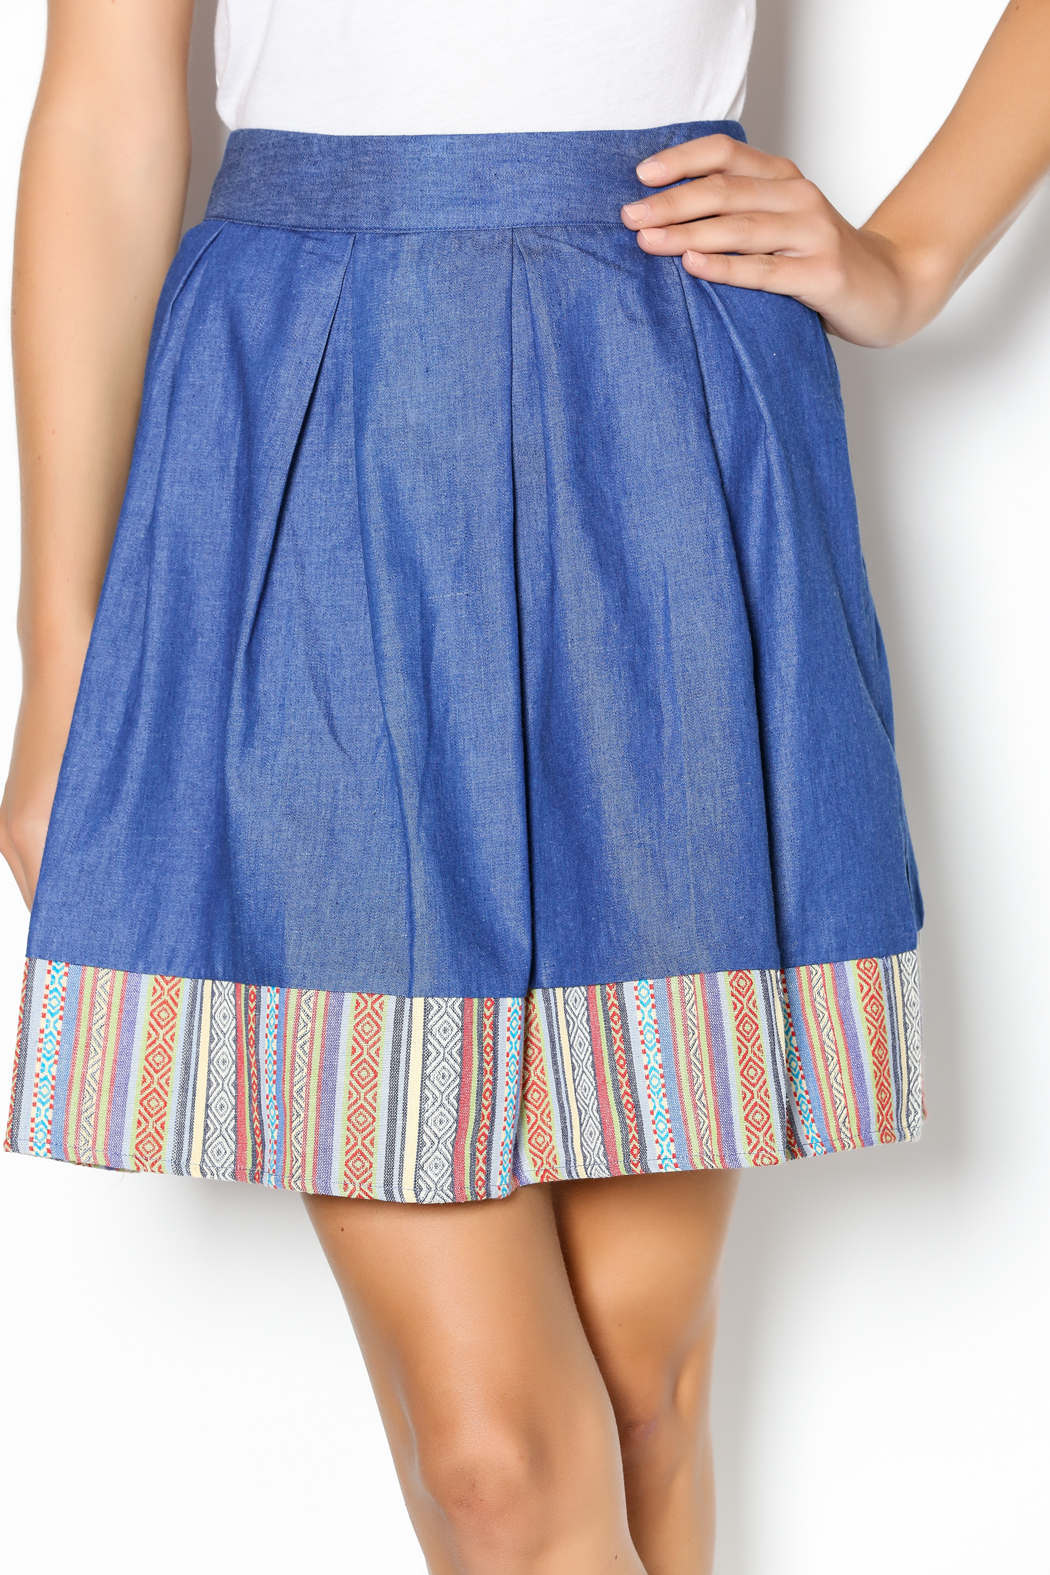 Under Skies Denim Pleated Skirt from California by MP Couture ...